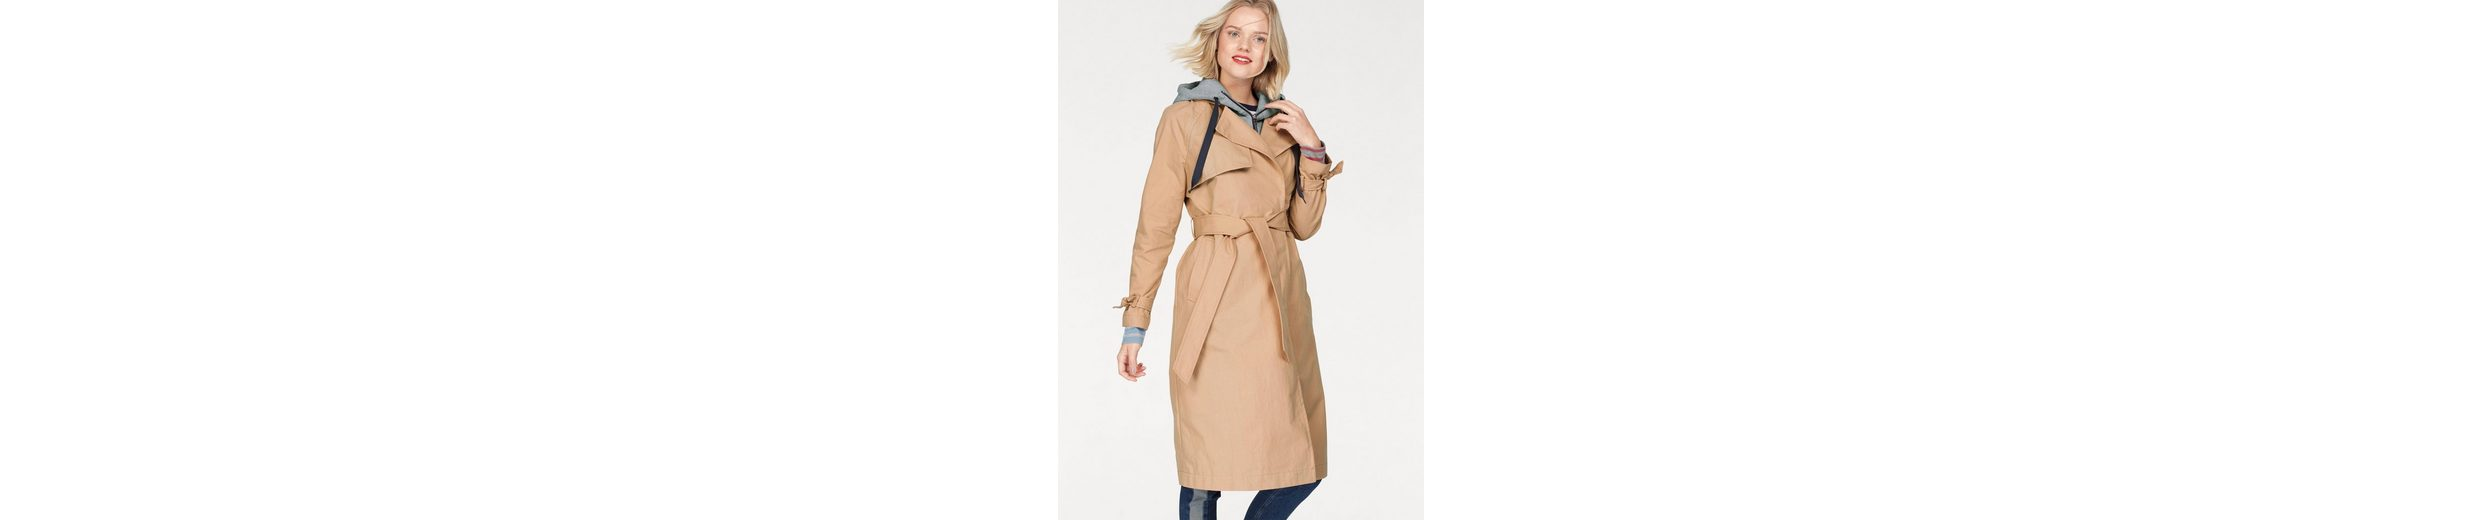 TOMMY JEANS Trenchcoat, mit abnehmbarer Sweatkapuze